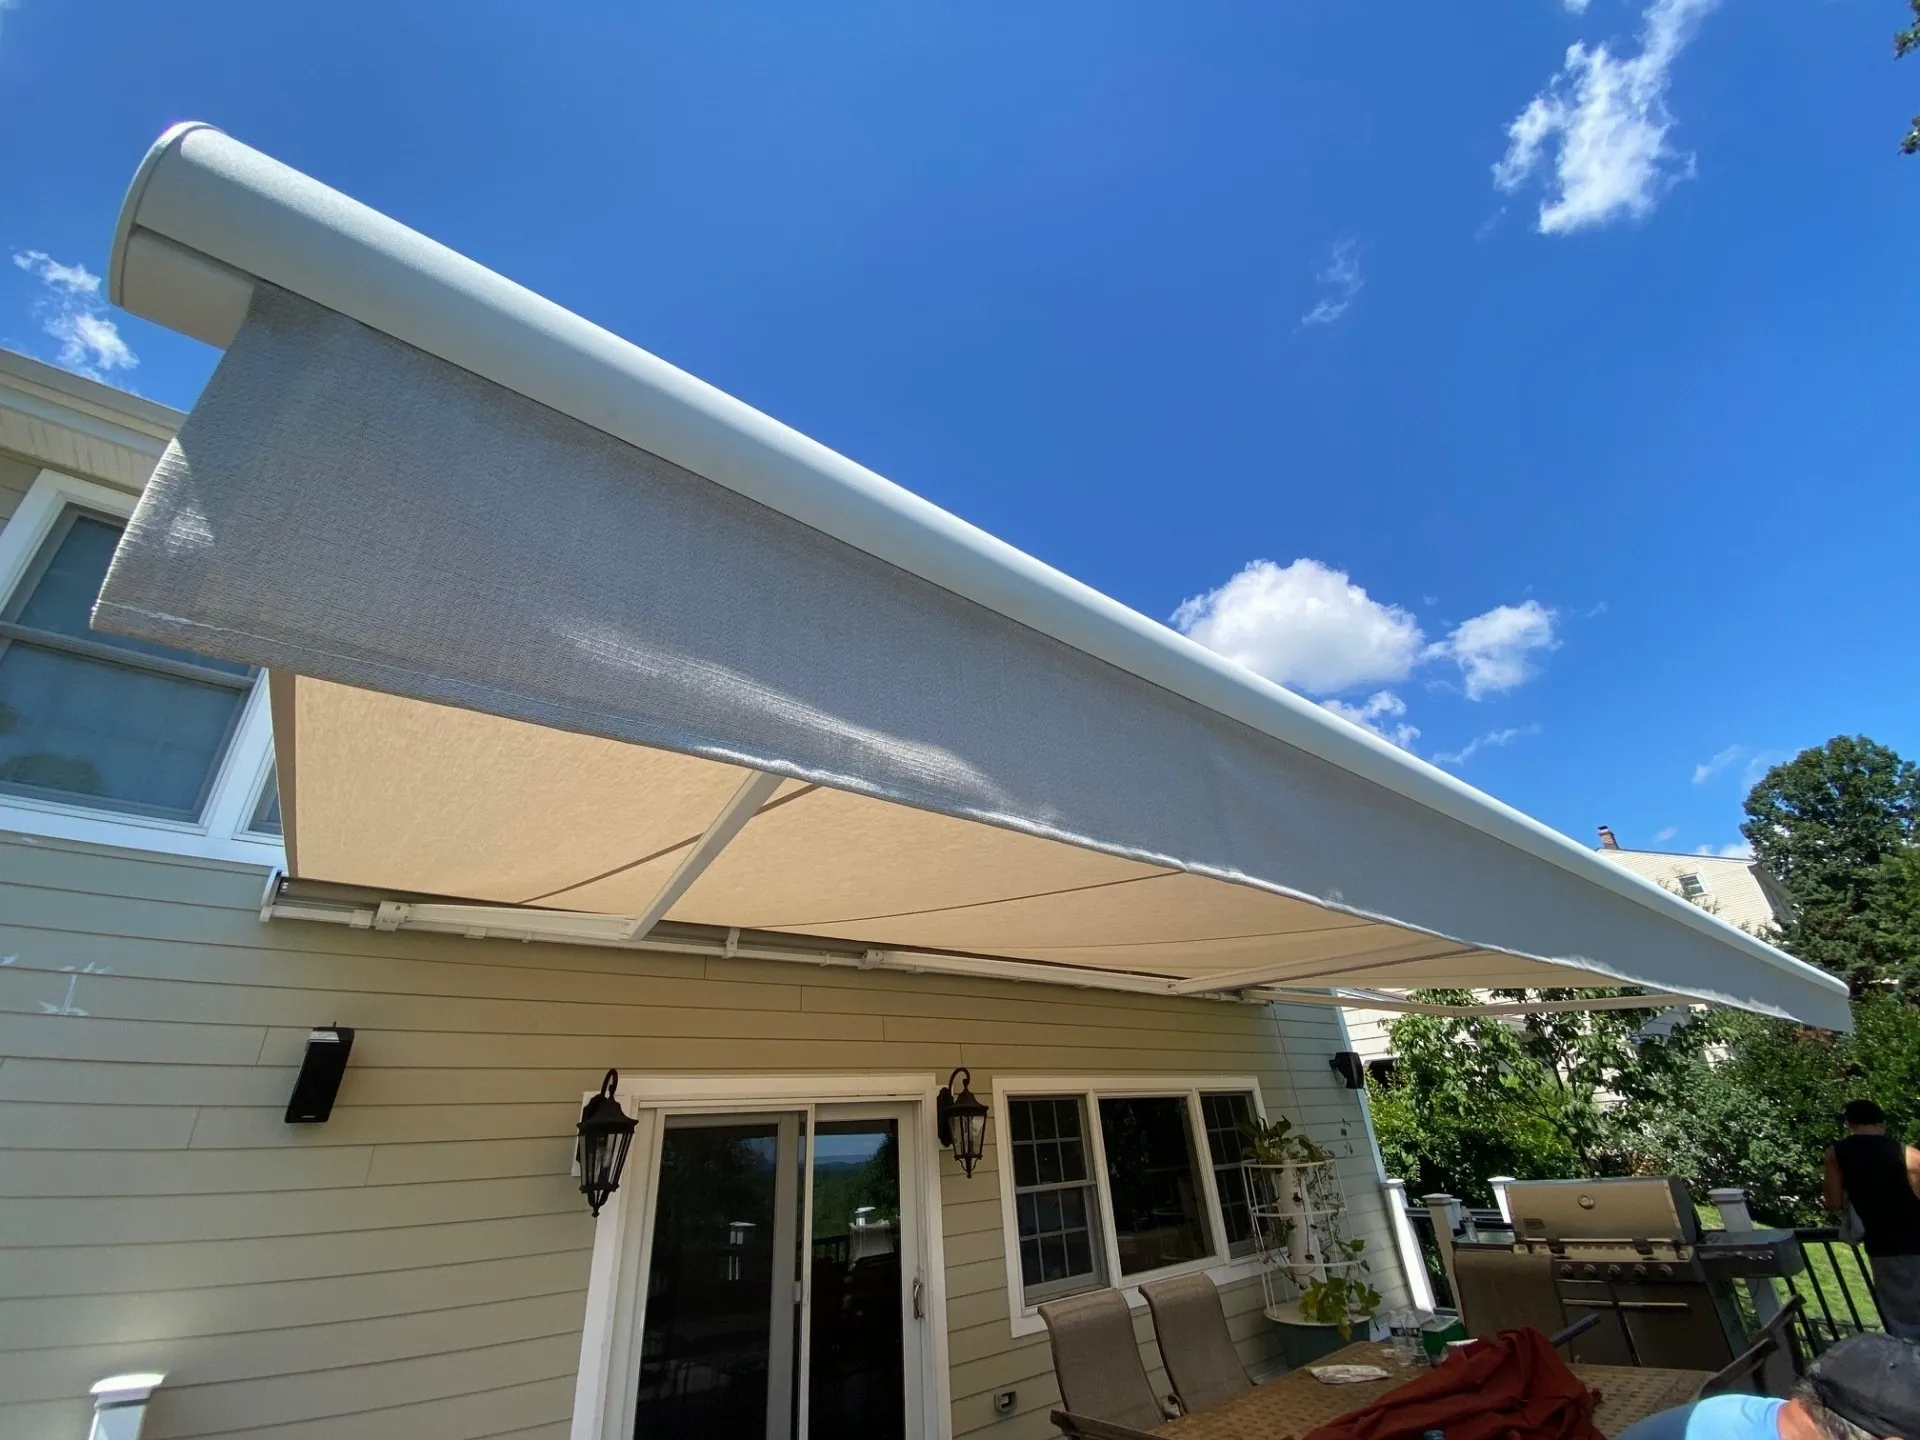 Retractable Awning For Deck or Patio | Teaneck NJ